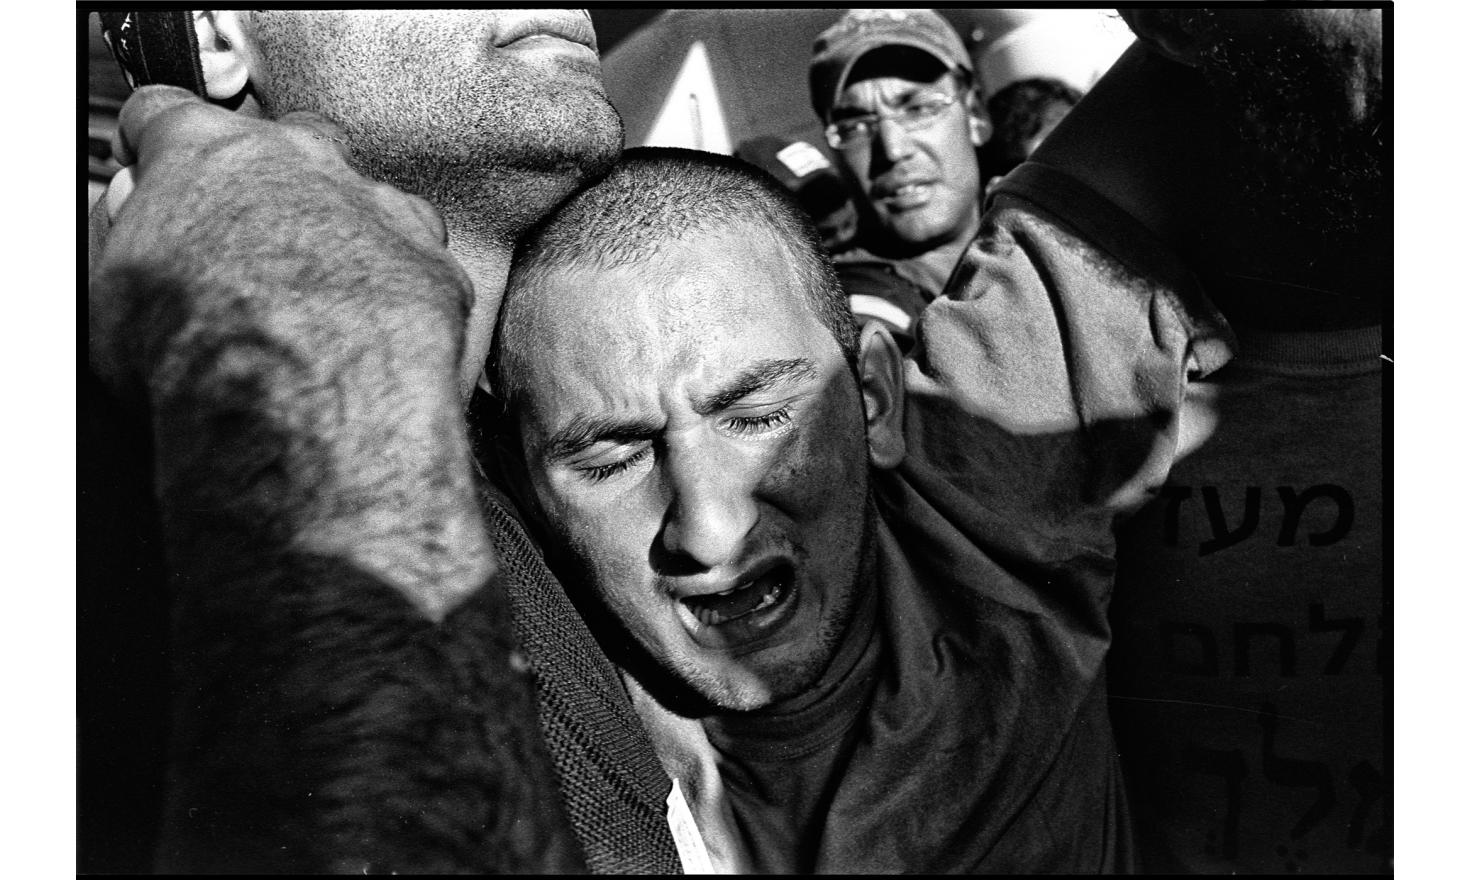 Evacuation by the Israeli army of the Gush Katif settlement. Gaza. August 2005